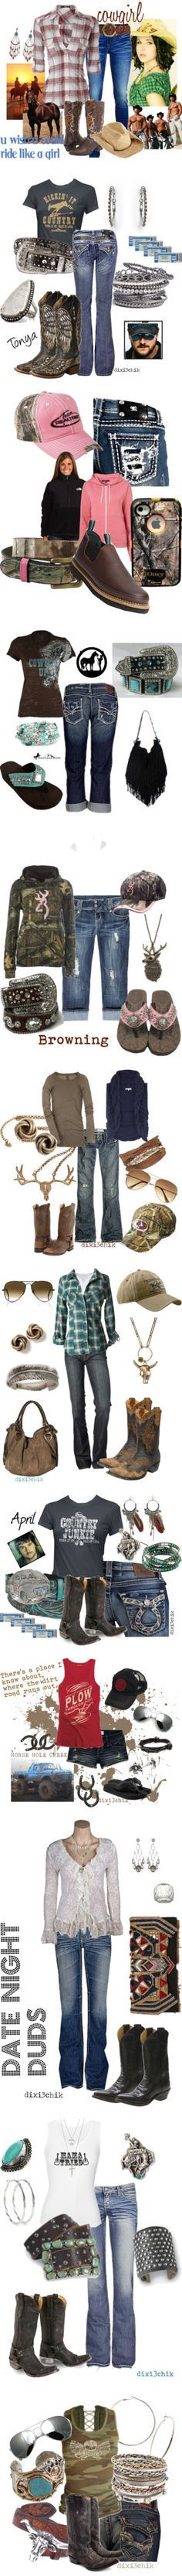 """Country Baby"" by cassie-88 ❤ liked on Polyvore I would wear some of these outfits"